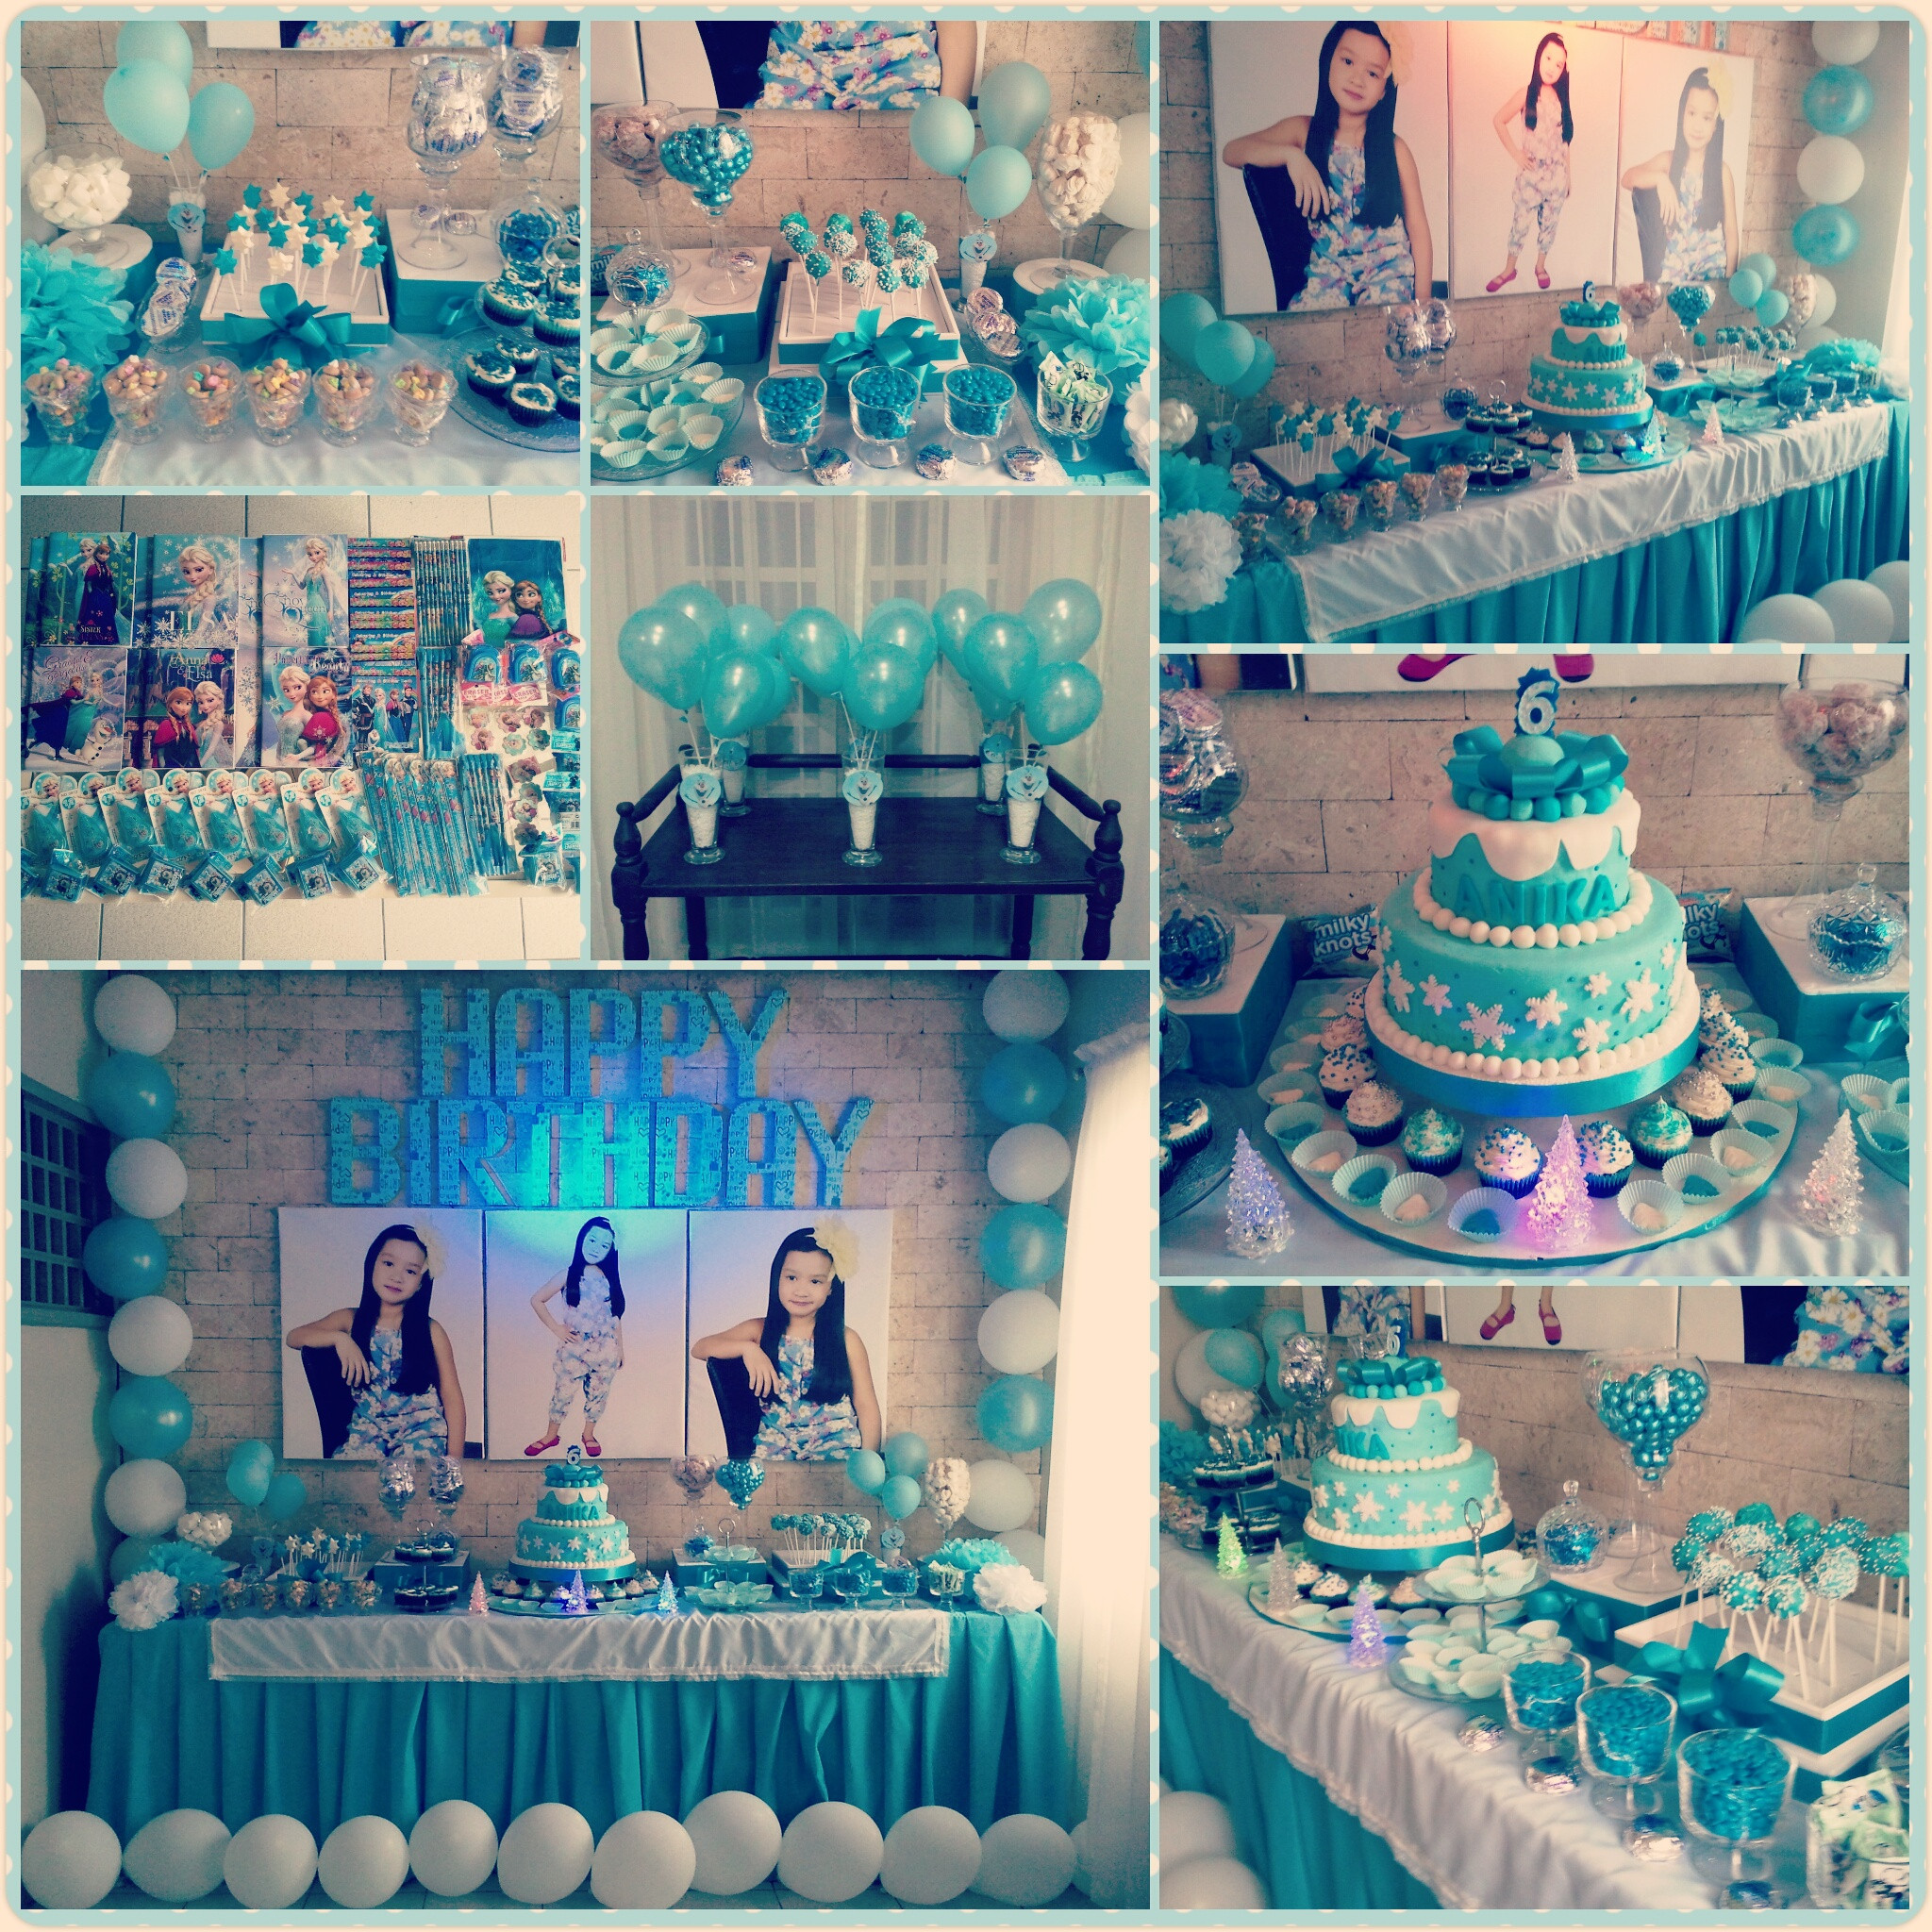 Best ideas about Frozen Themed Birthday Party . Save or Pin frozen theme birthday party Now.